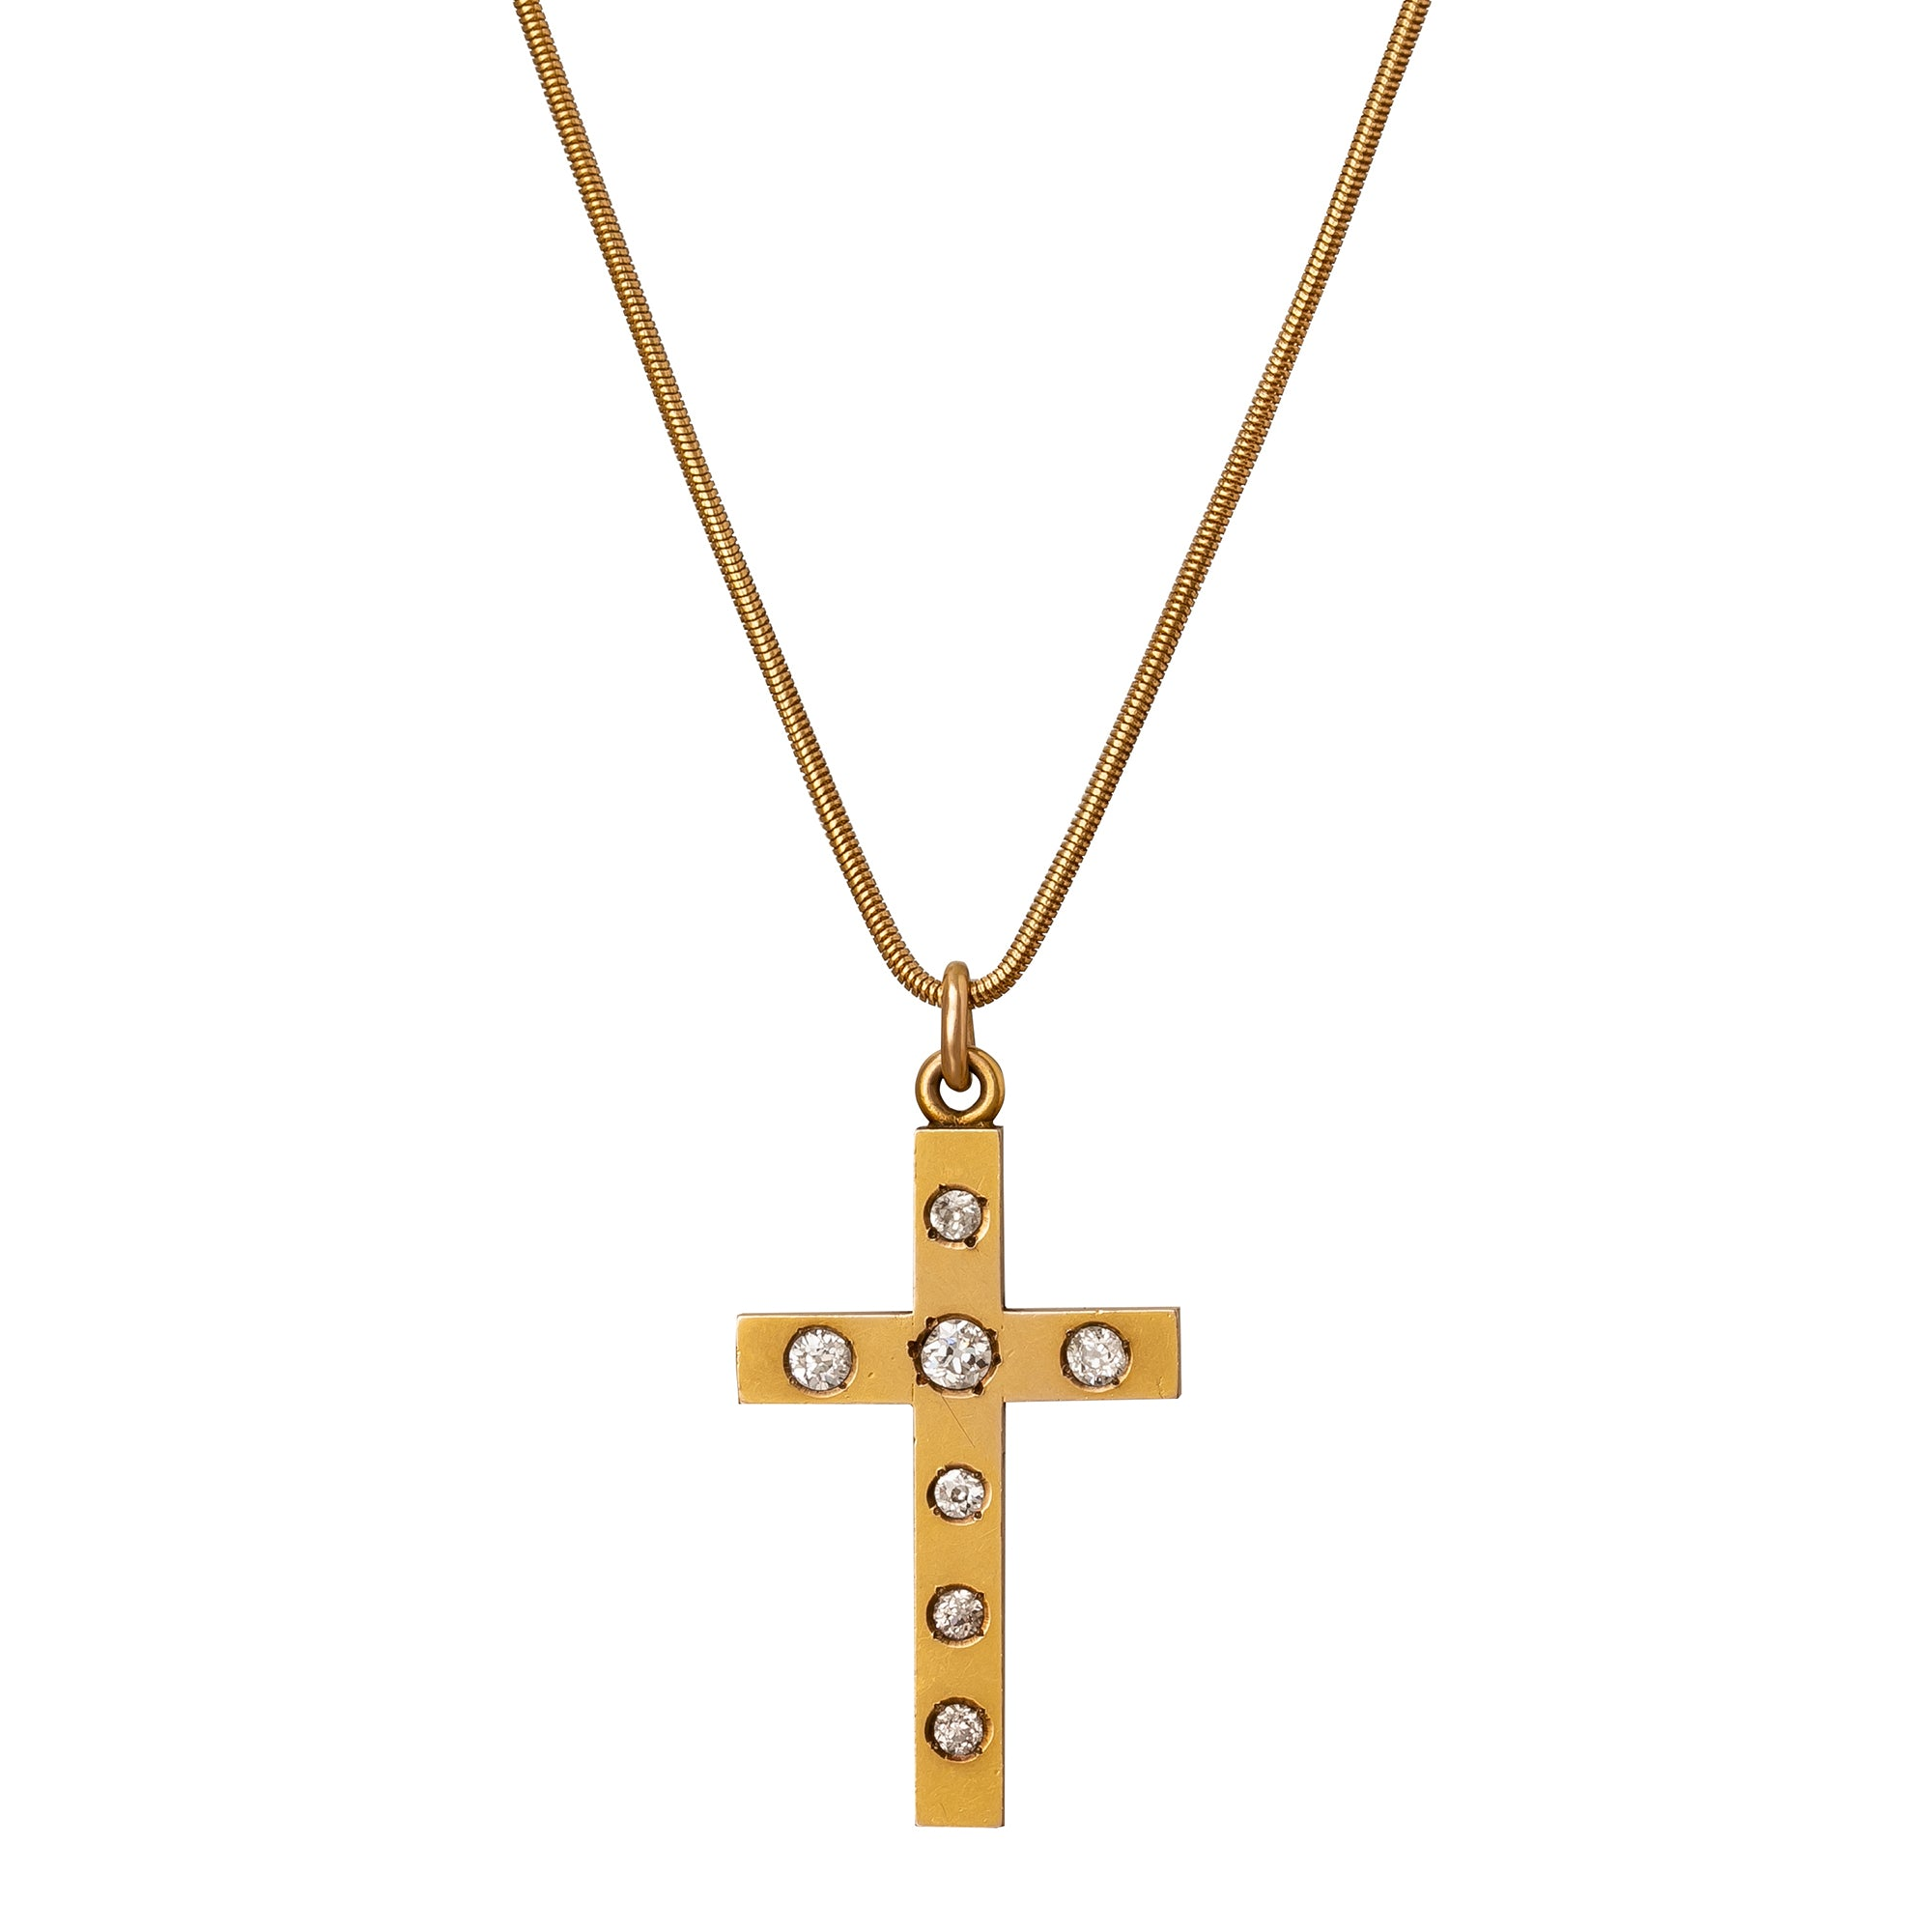 Gold & Diamond Cross Necklace - Antique & Vintage Jewelry - Necklaces | Broken English Jewelry